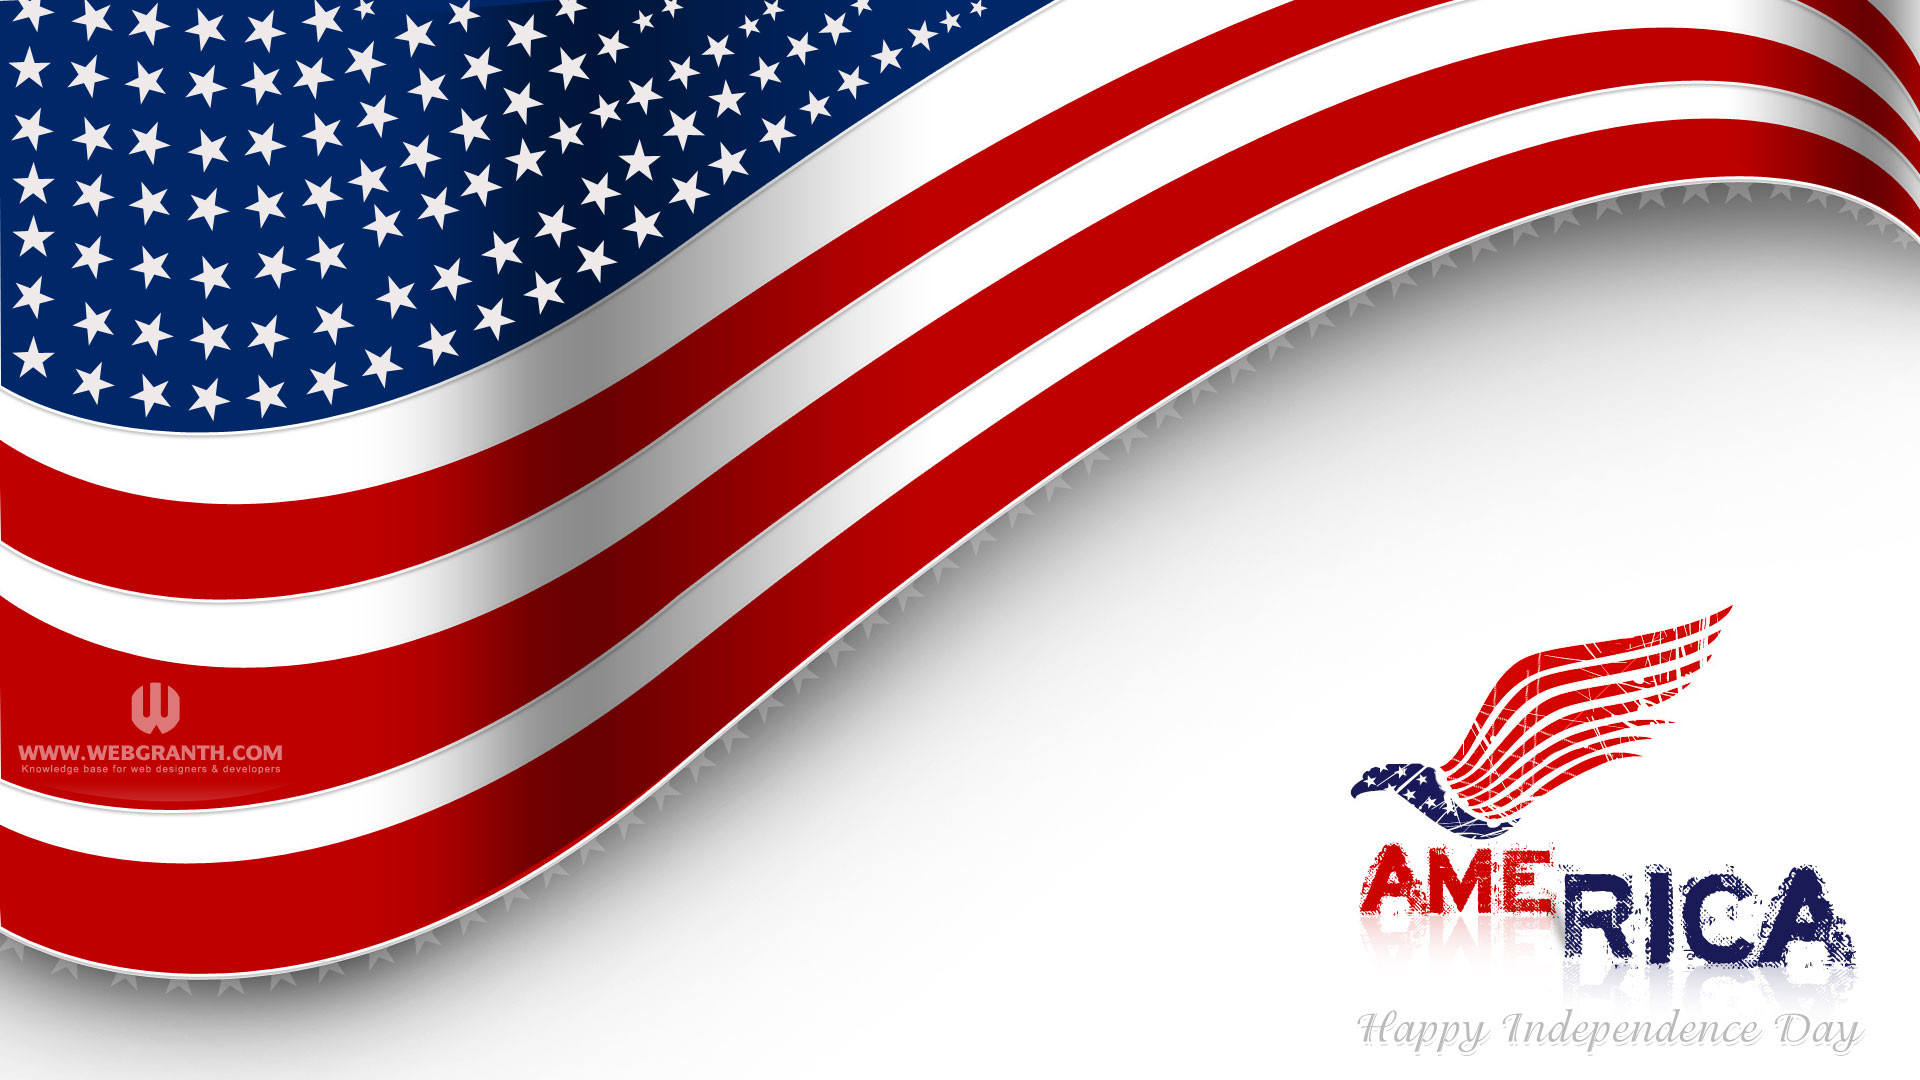 1920x1080 US Independence Day background image desktop wallpaper